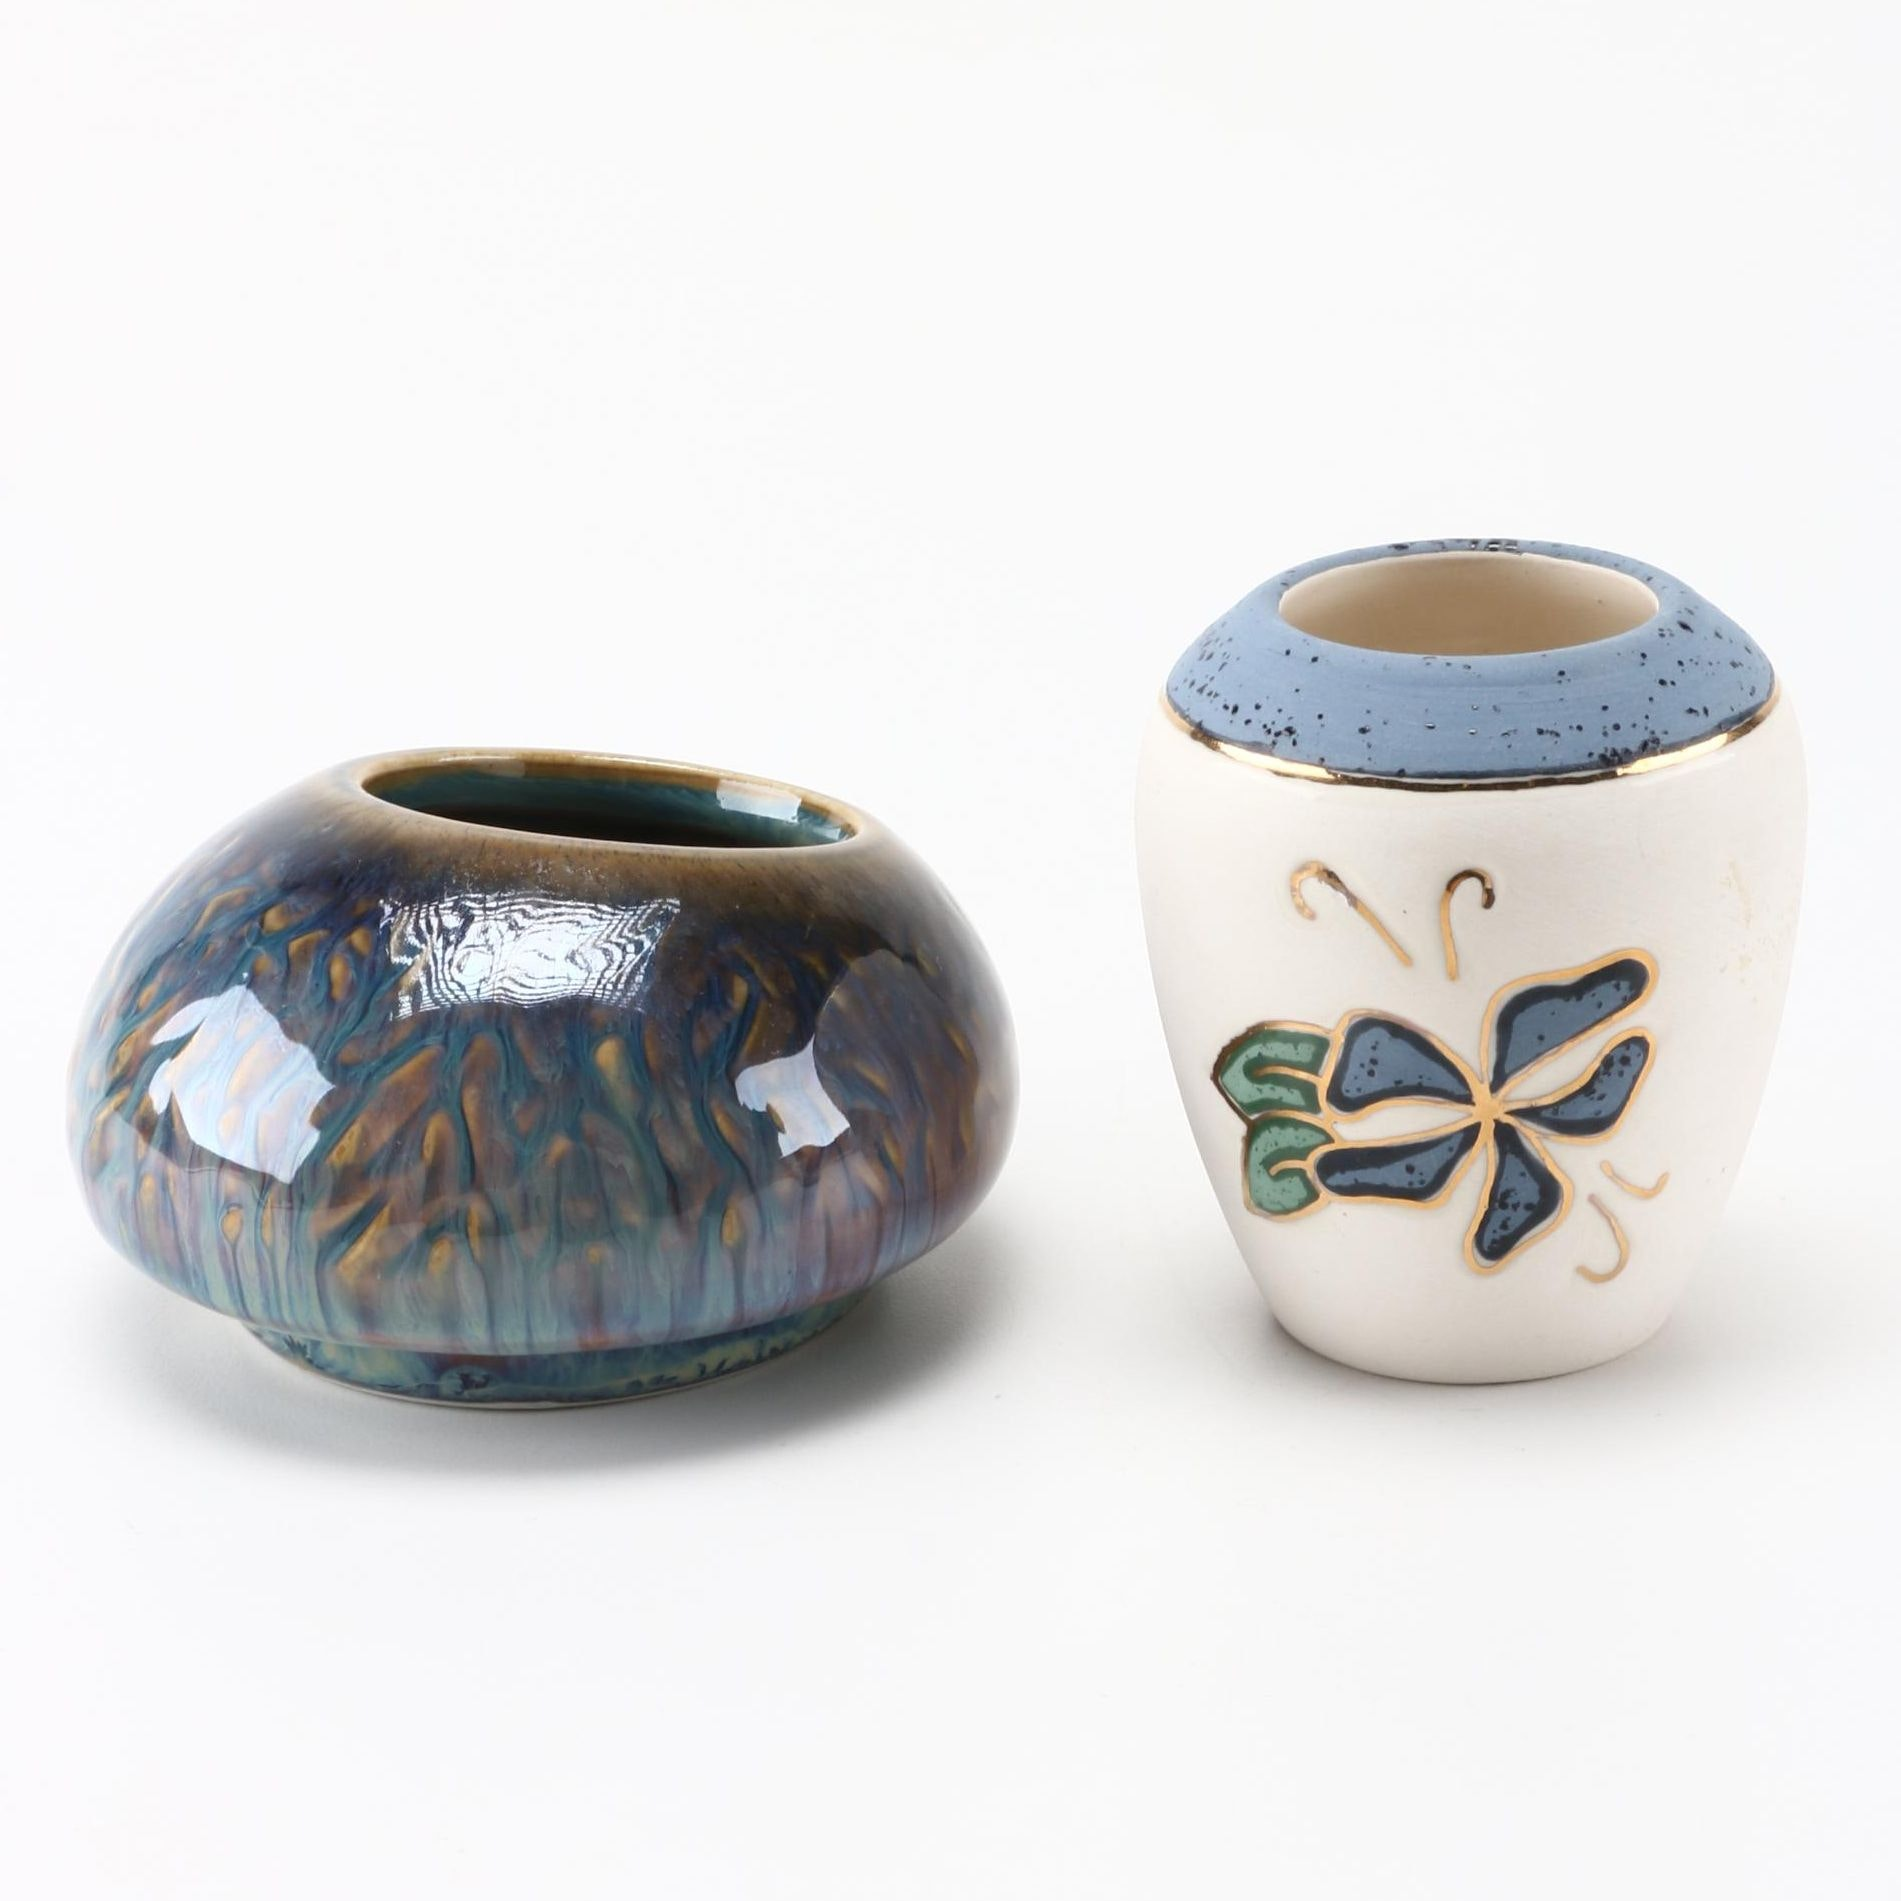 Pair of Contemporary Hand Thrown Pots